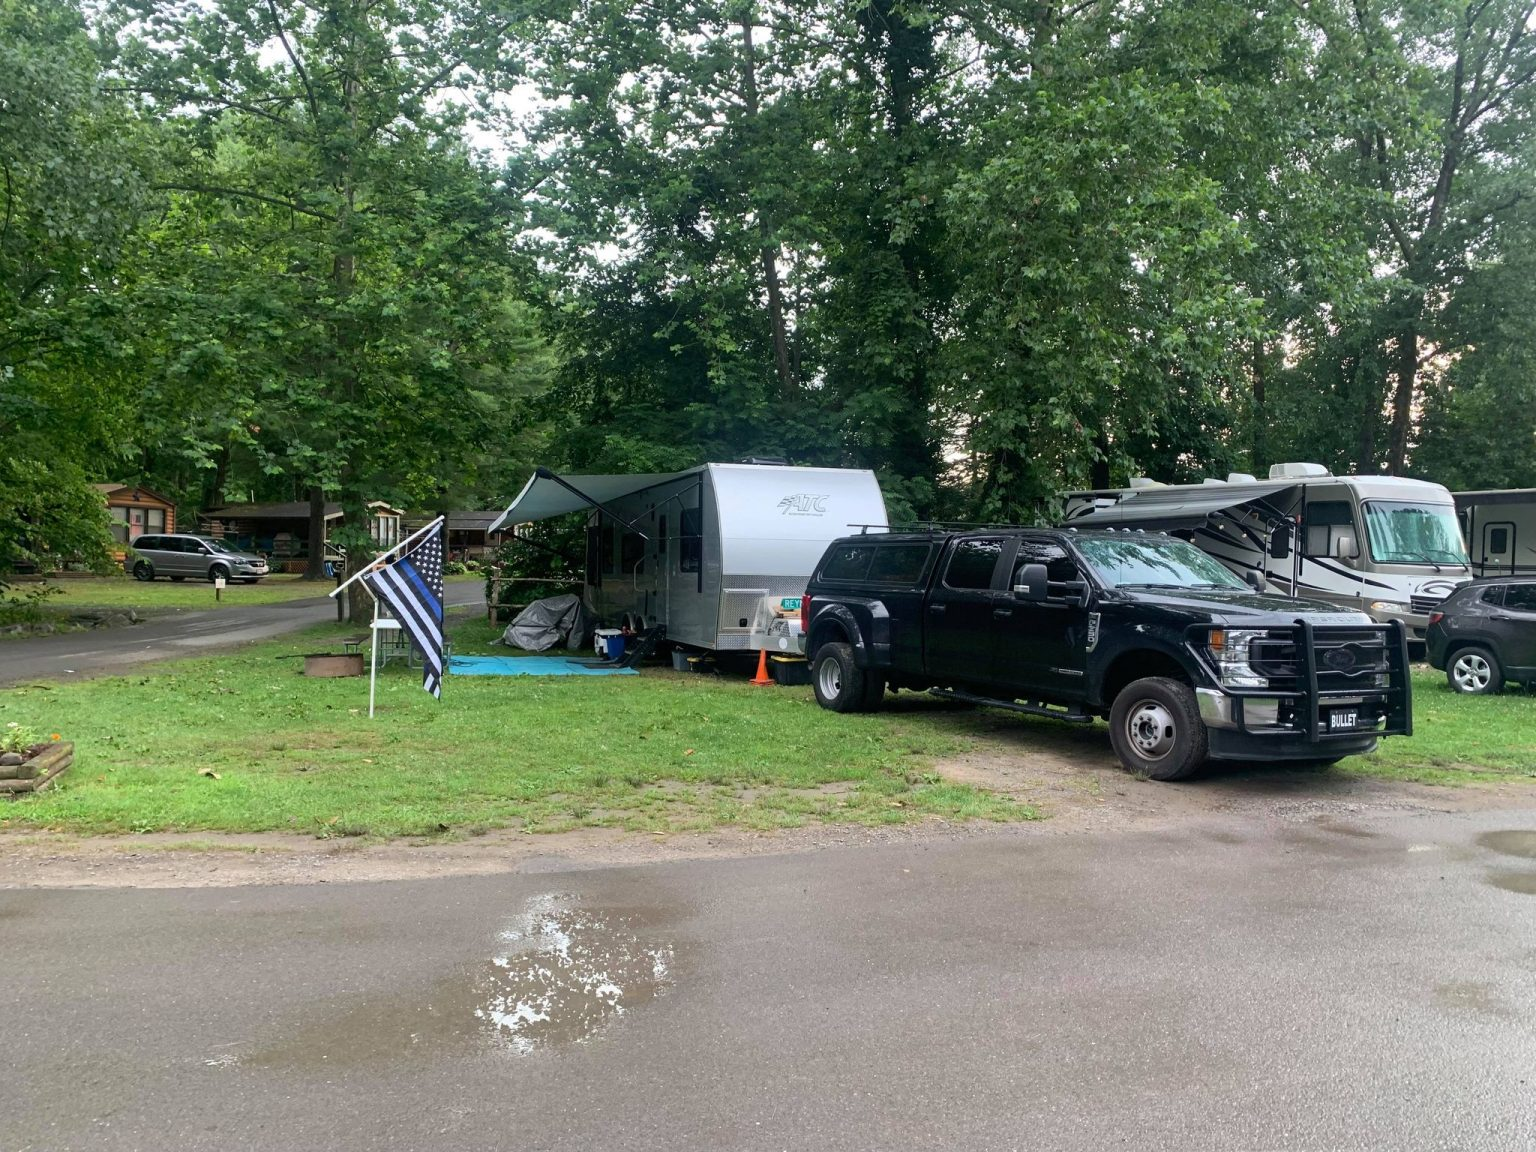 Retired police officer told he can't hang Thin Blue Line flag at RV campground